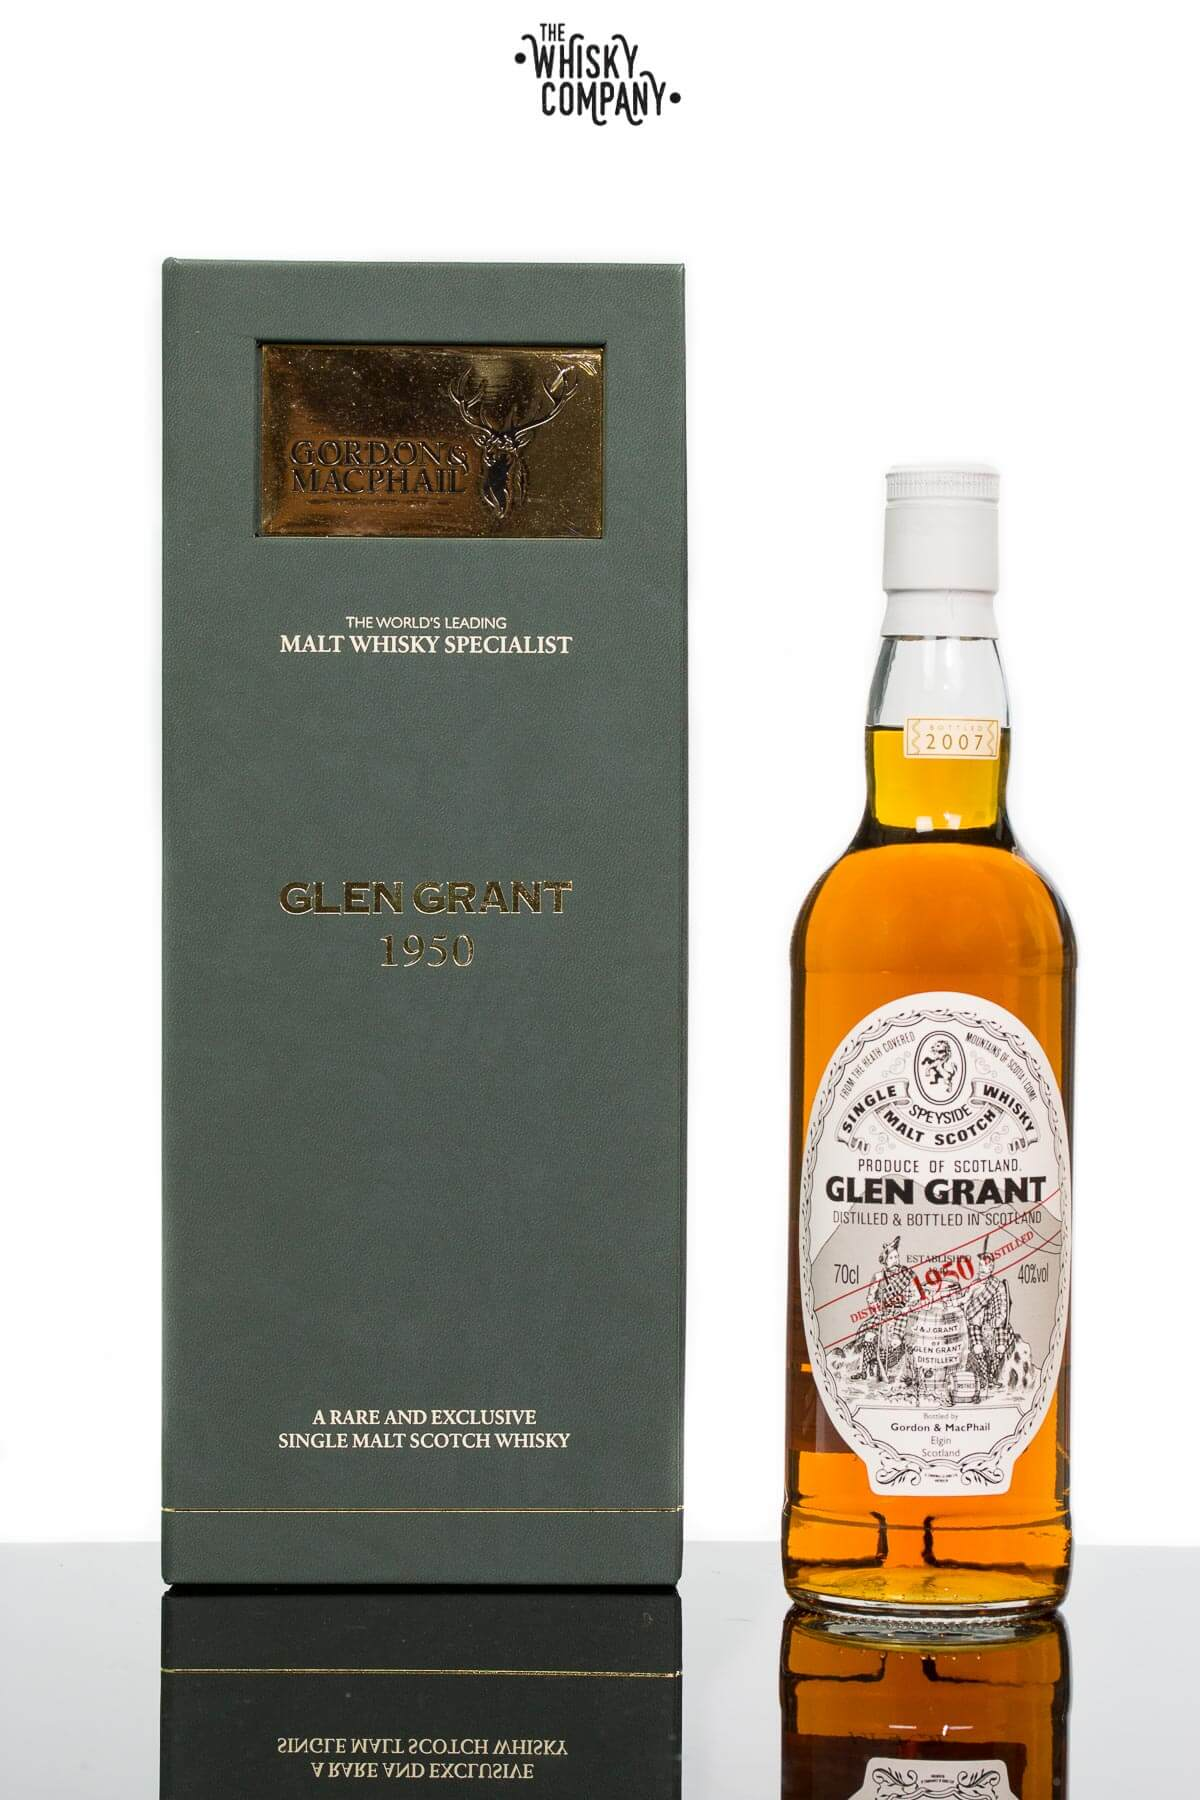 Gordon & MacPhail 1950 Glen Grant Speyside Single Malt Scotch Whisky